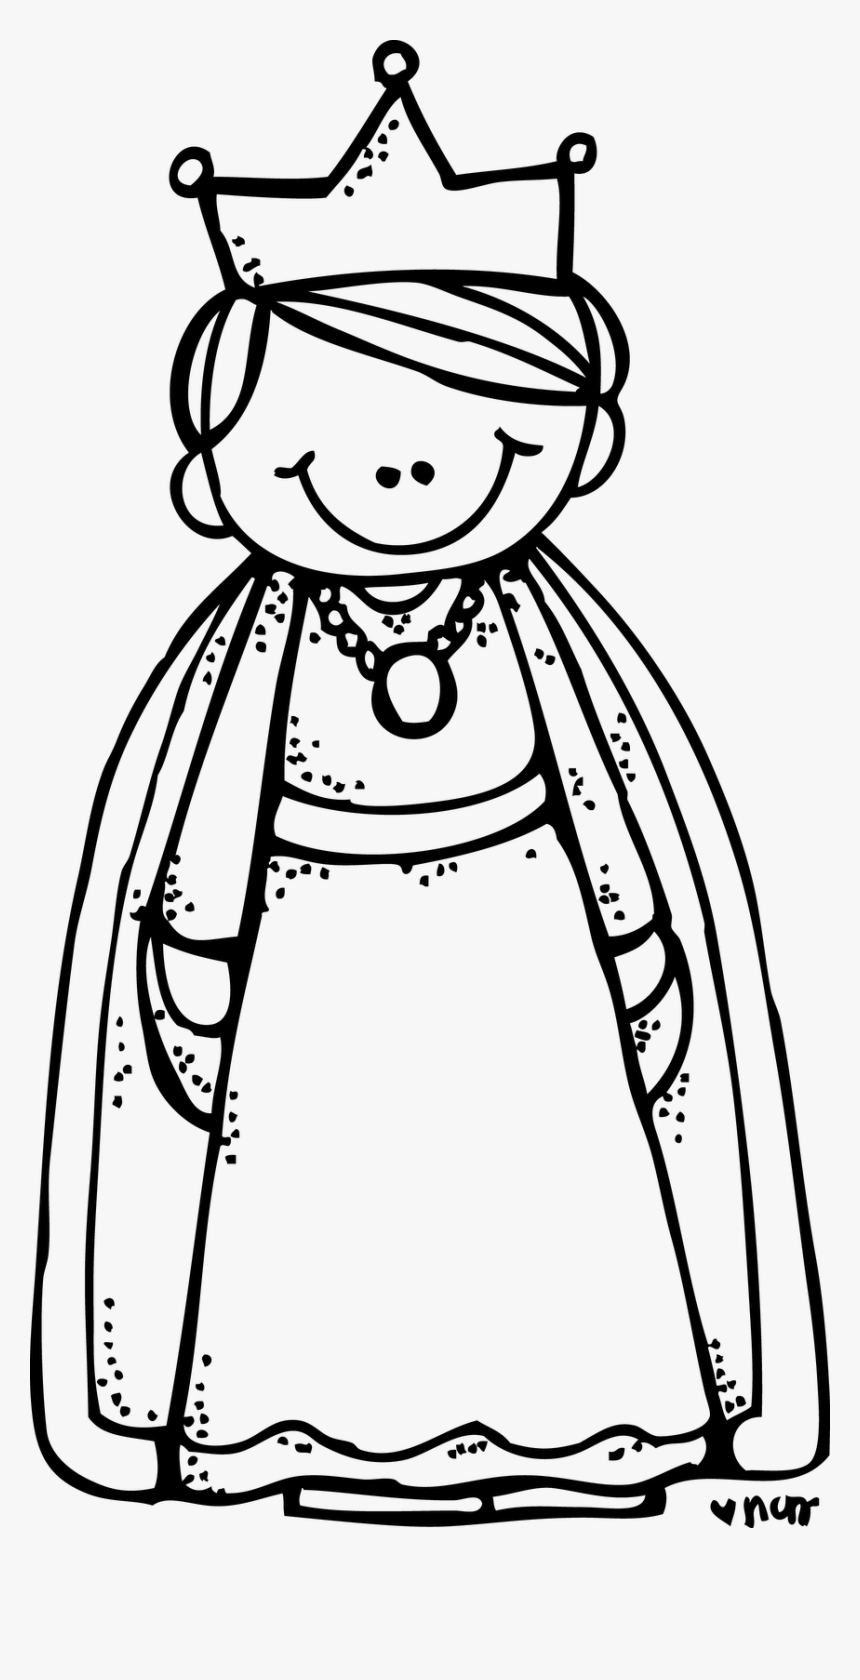 Queen Black And White Clipart Queen Clipart Black And White Hd Png Download Kindpng